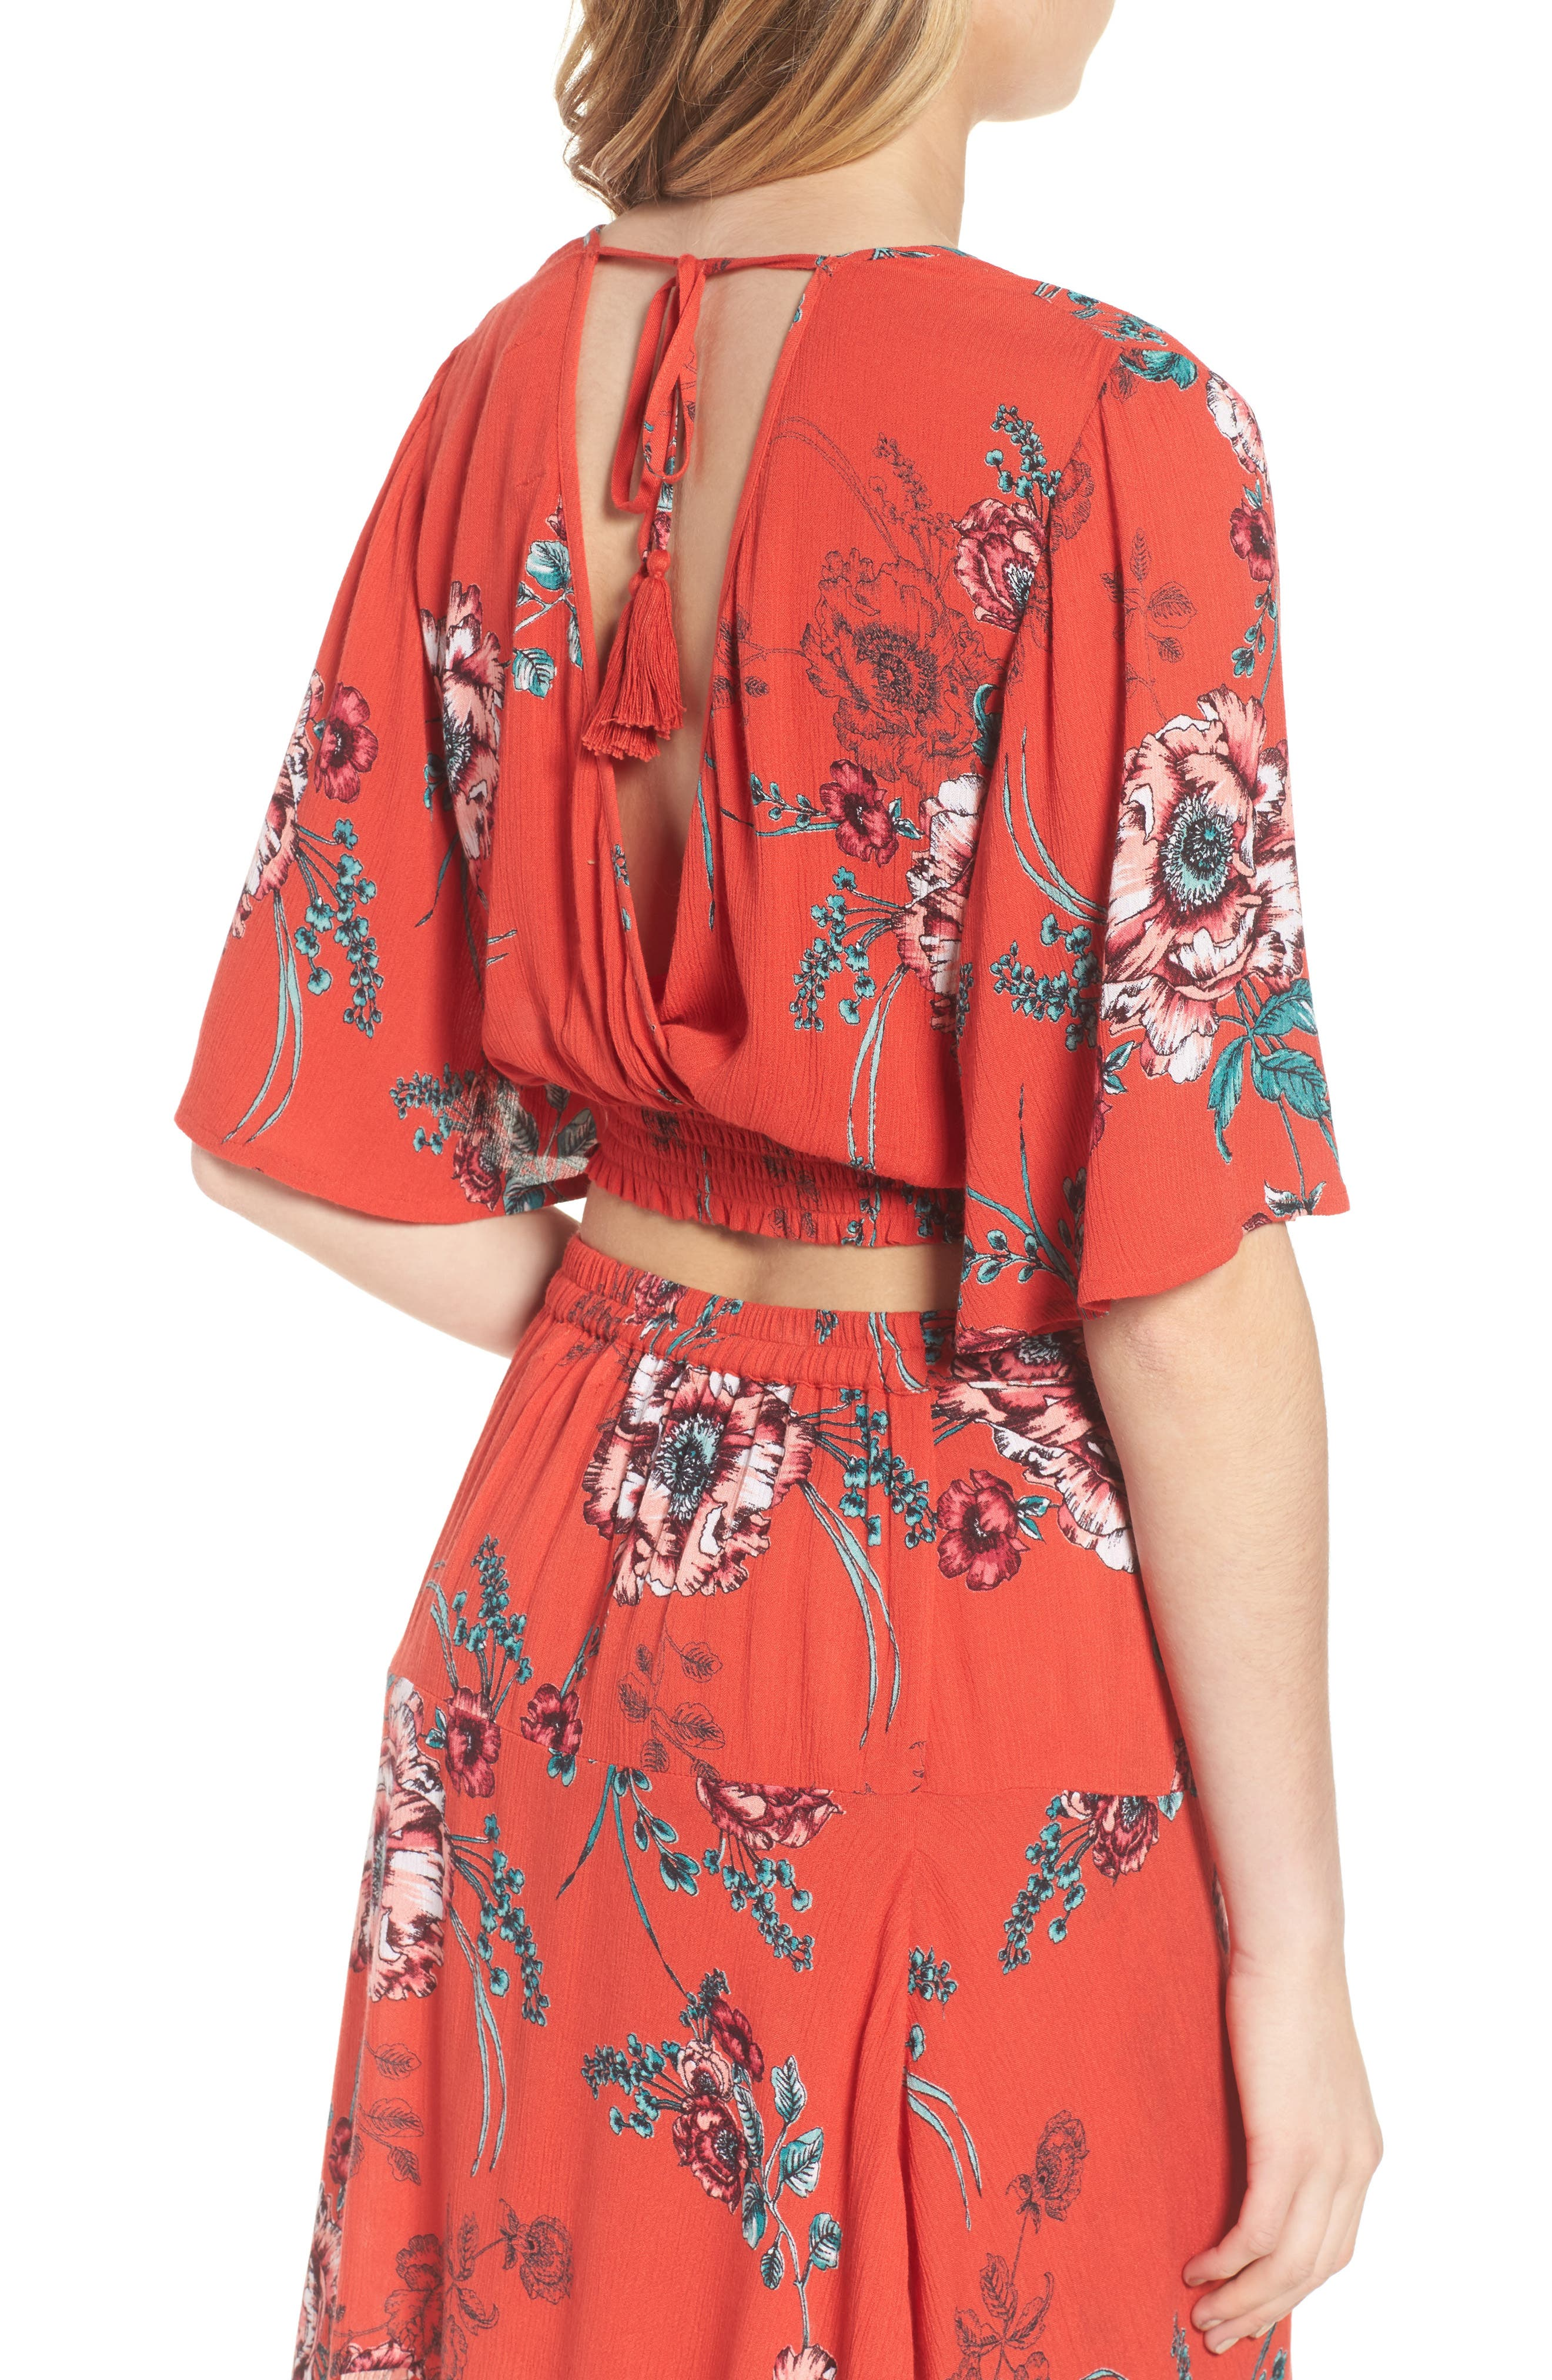 Shadow Floral Tie Back Crop Top,                             Alternate thumbnail 3, color,                             Red/ Peach